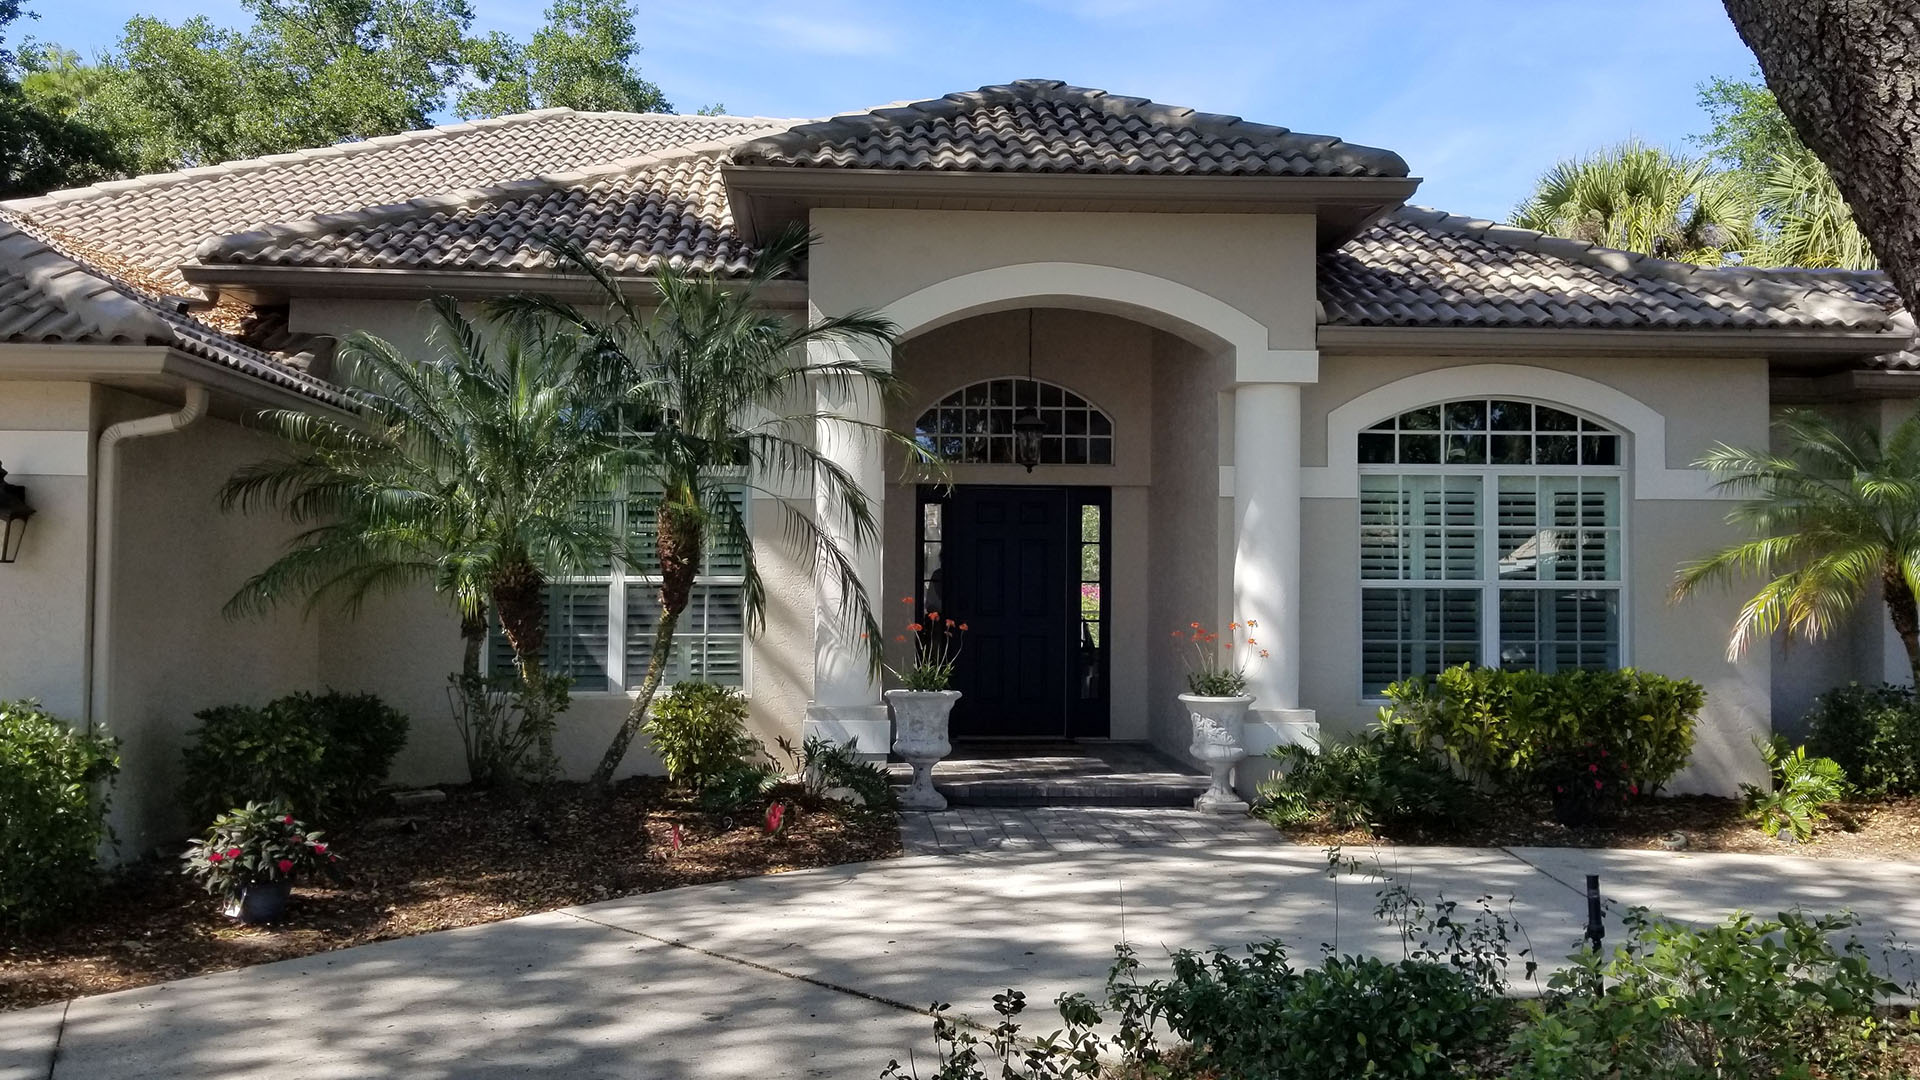 Sarasota Painting Contractor, Painting Company and Painter